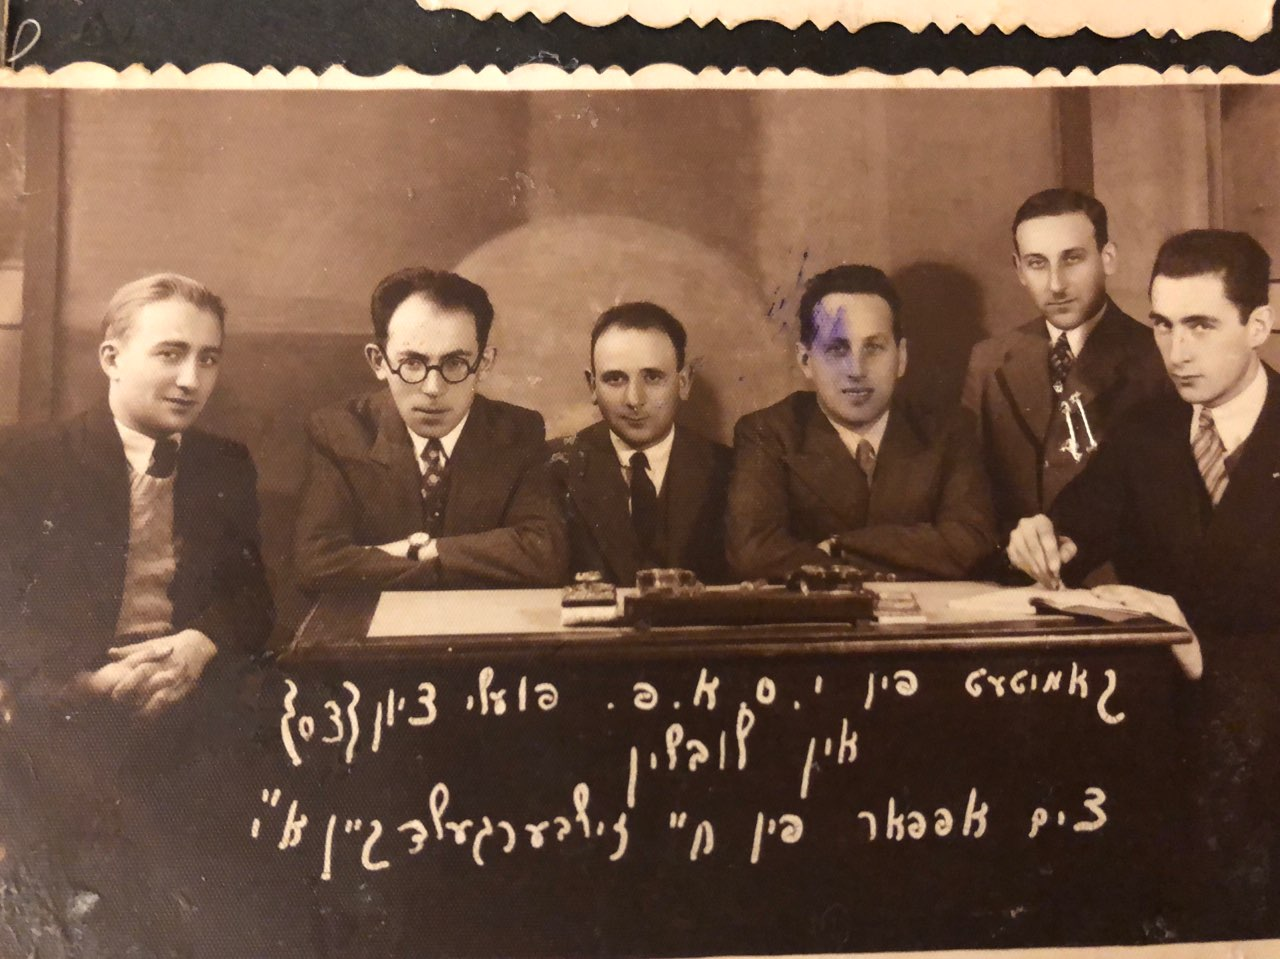 Shmuel Zytomirski, second from left.